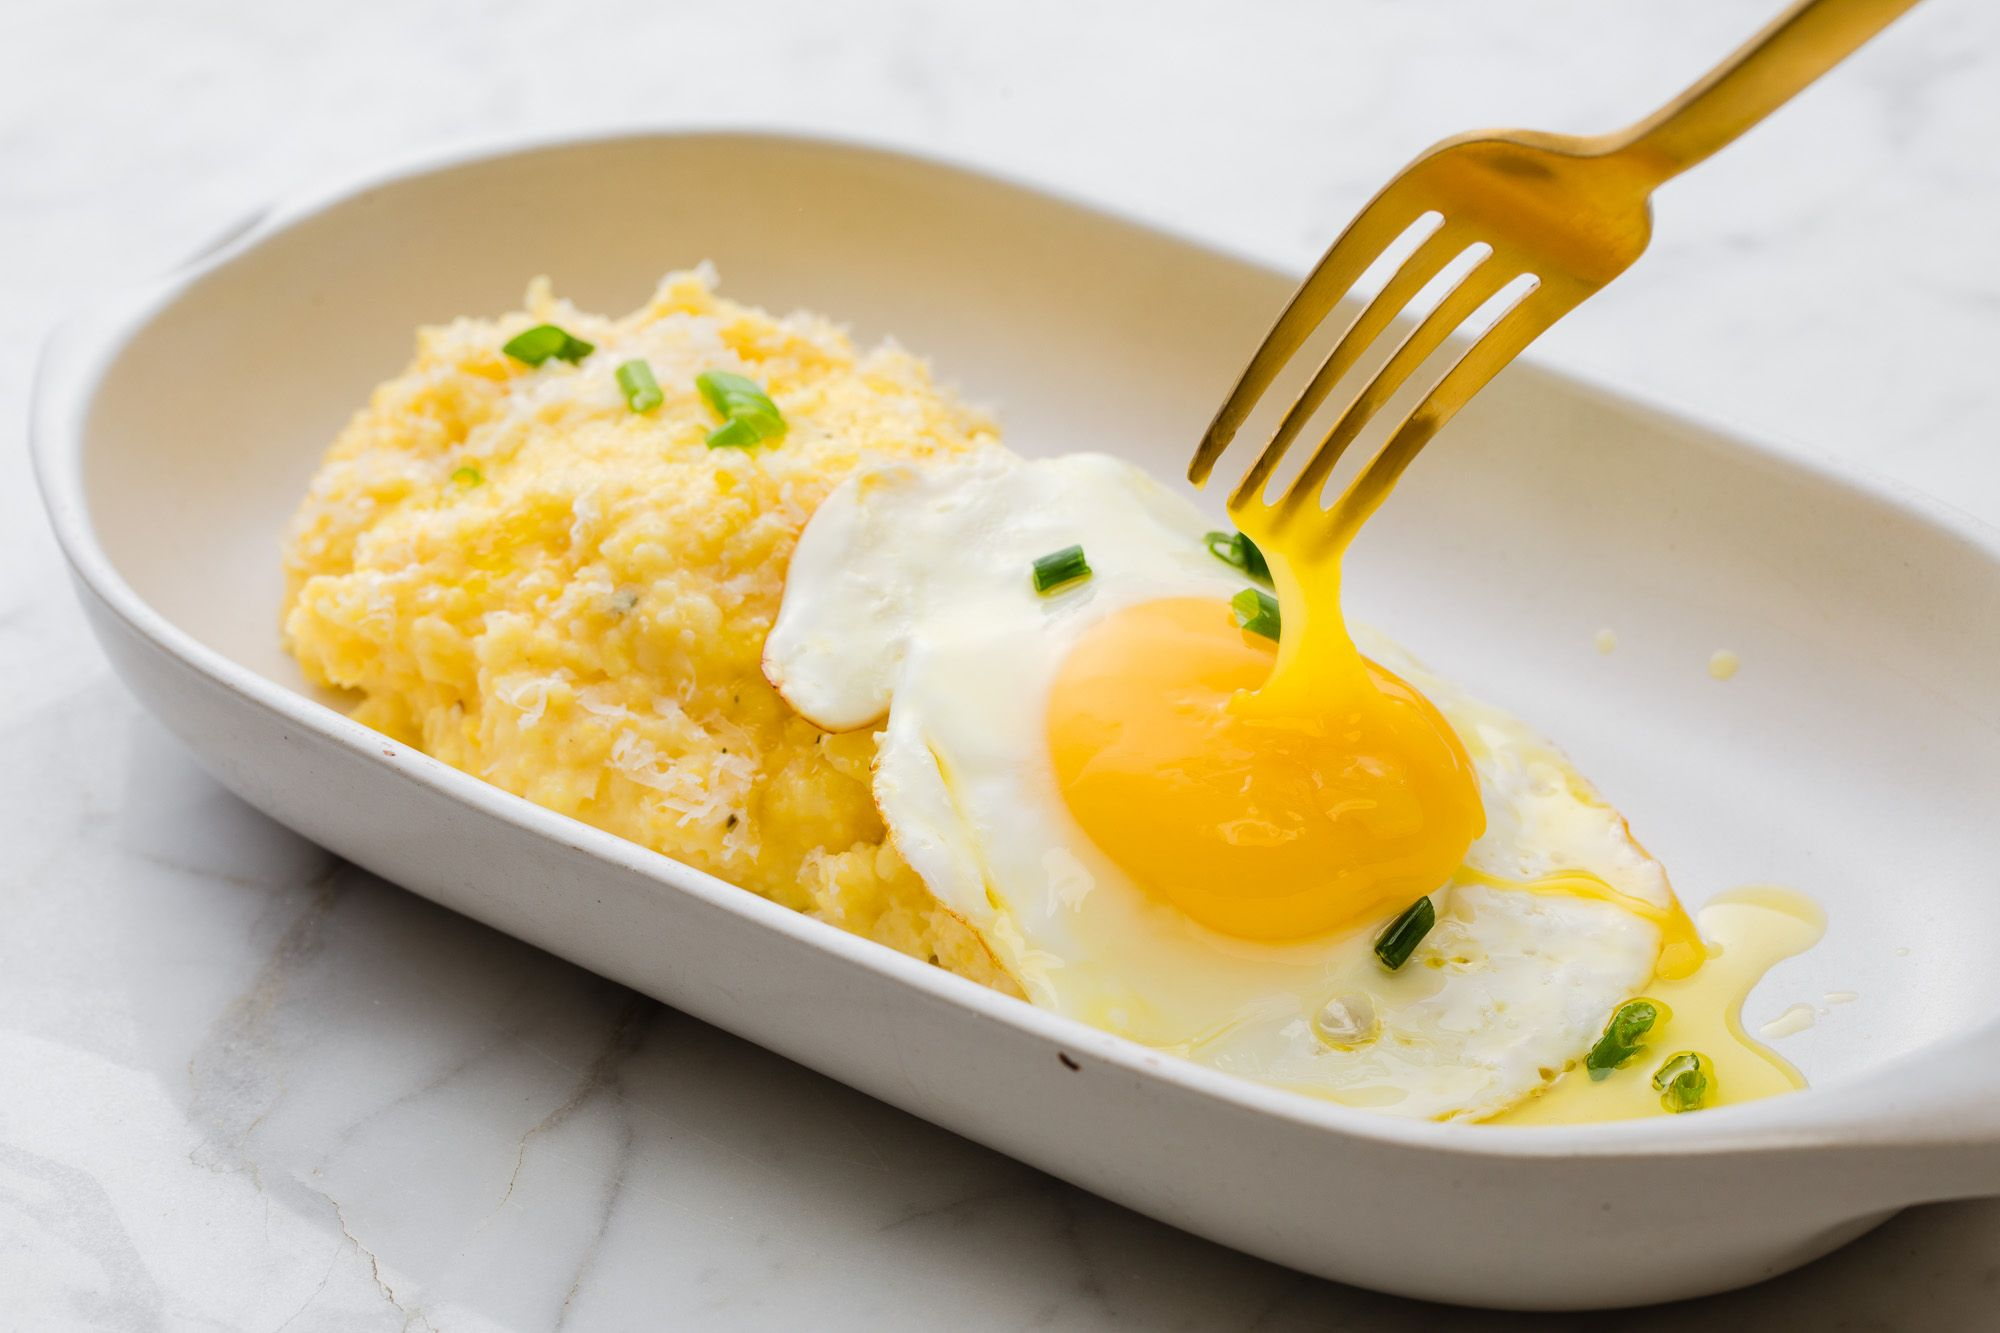 A plate of fried eggs over polenta cooked with Bertolli extra virgin olive oil. Easy Cooking recipes with olive oil. Bertolli